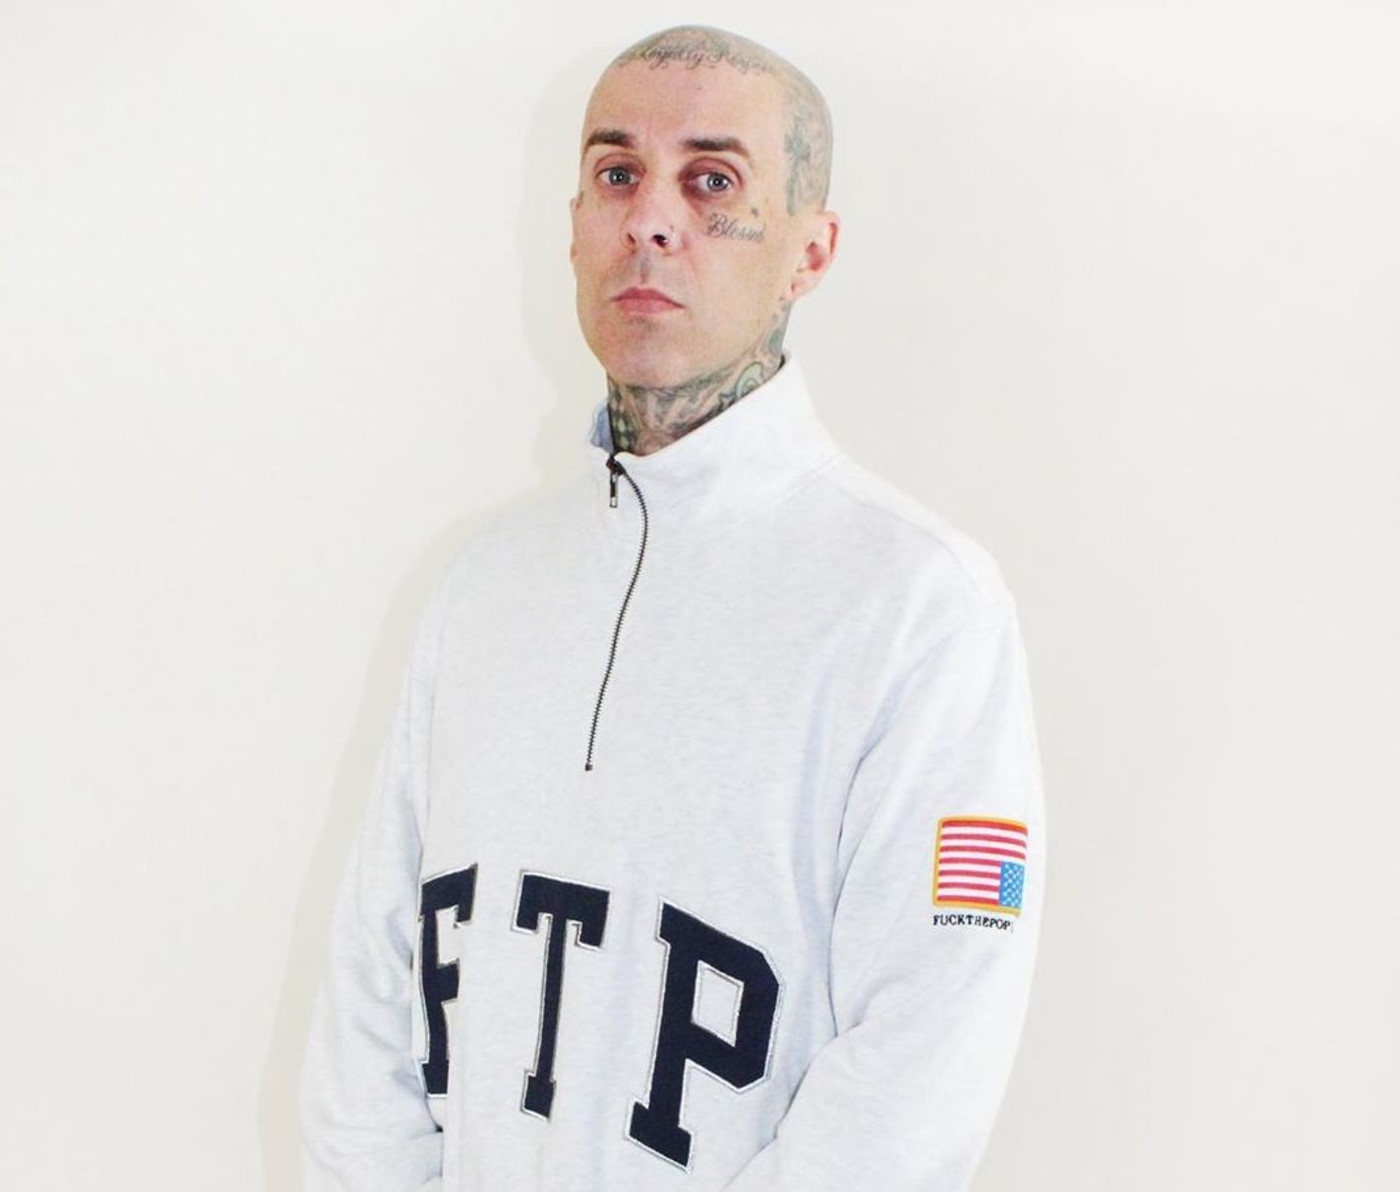 Travis Barker Wearing FTP